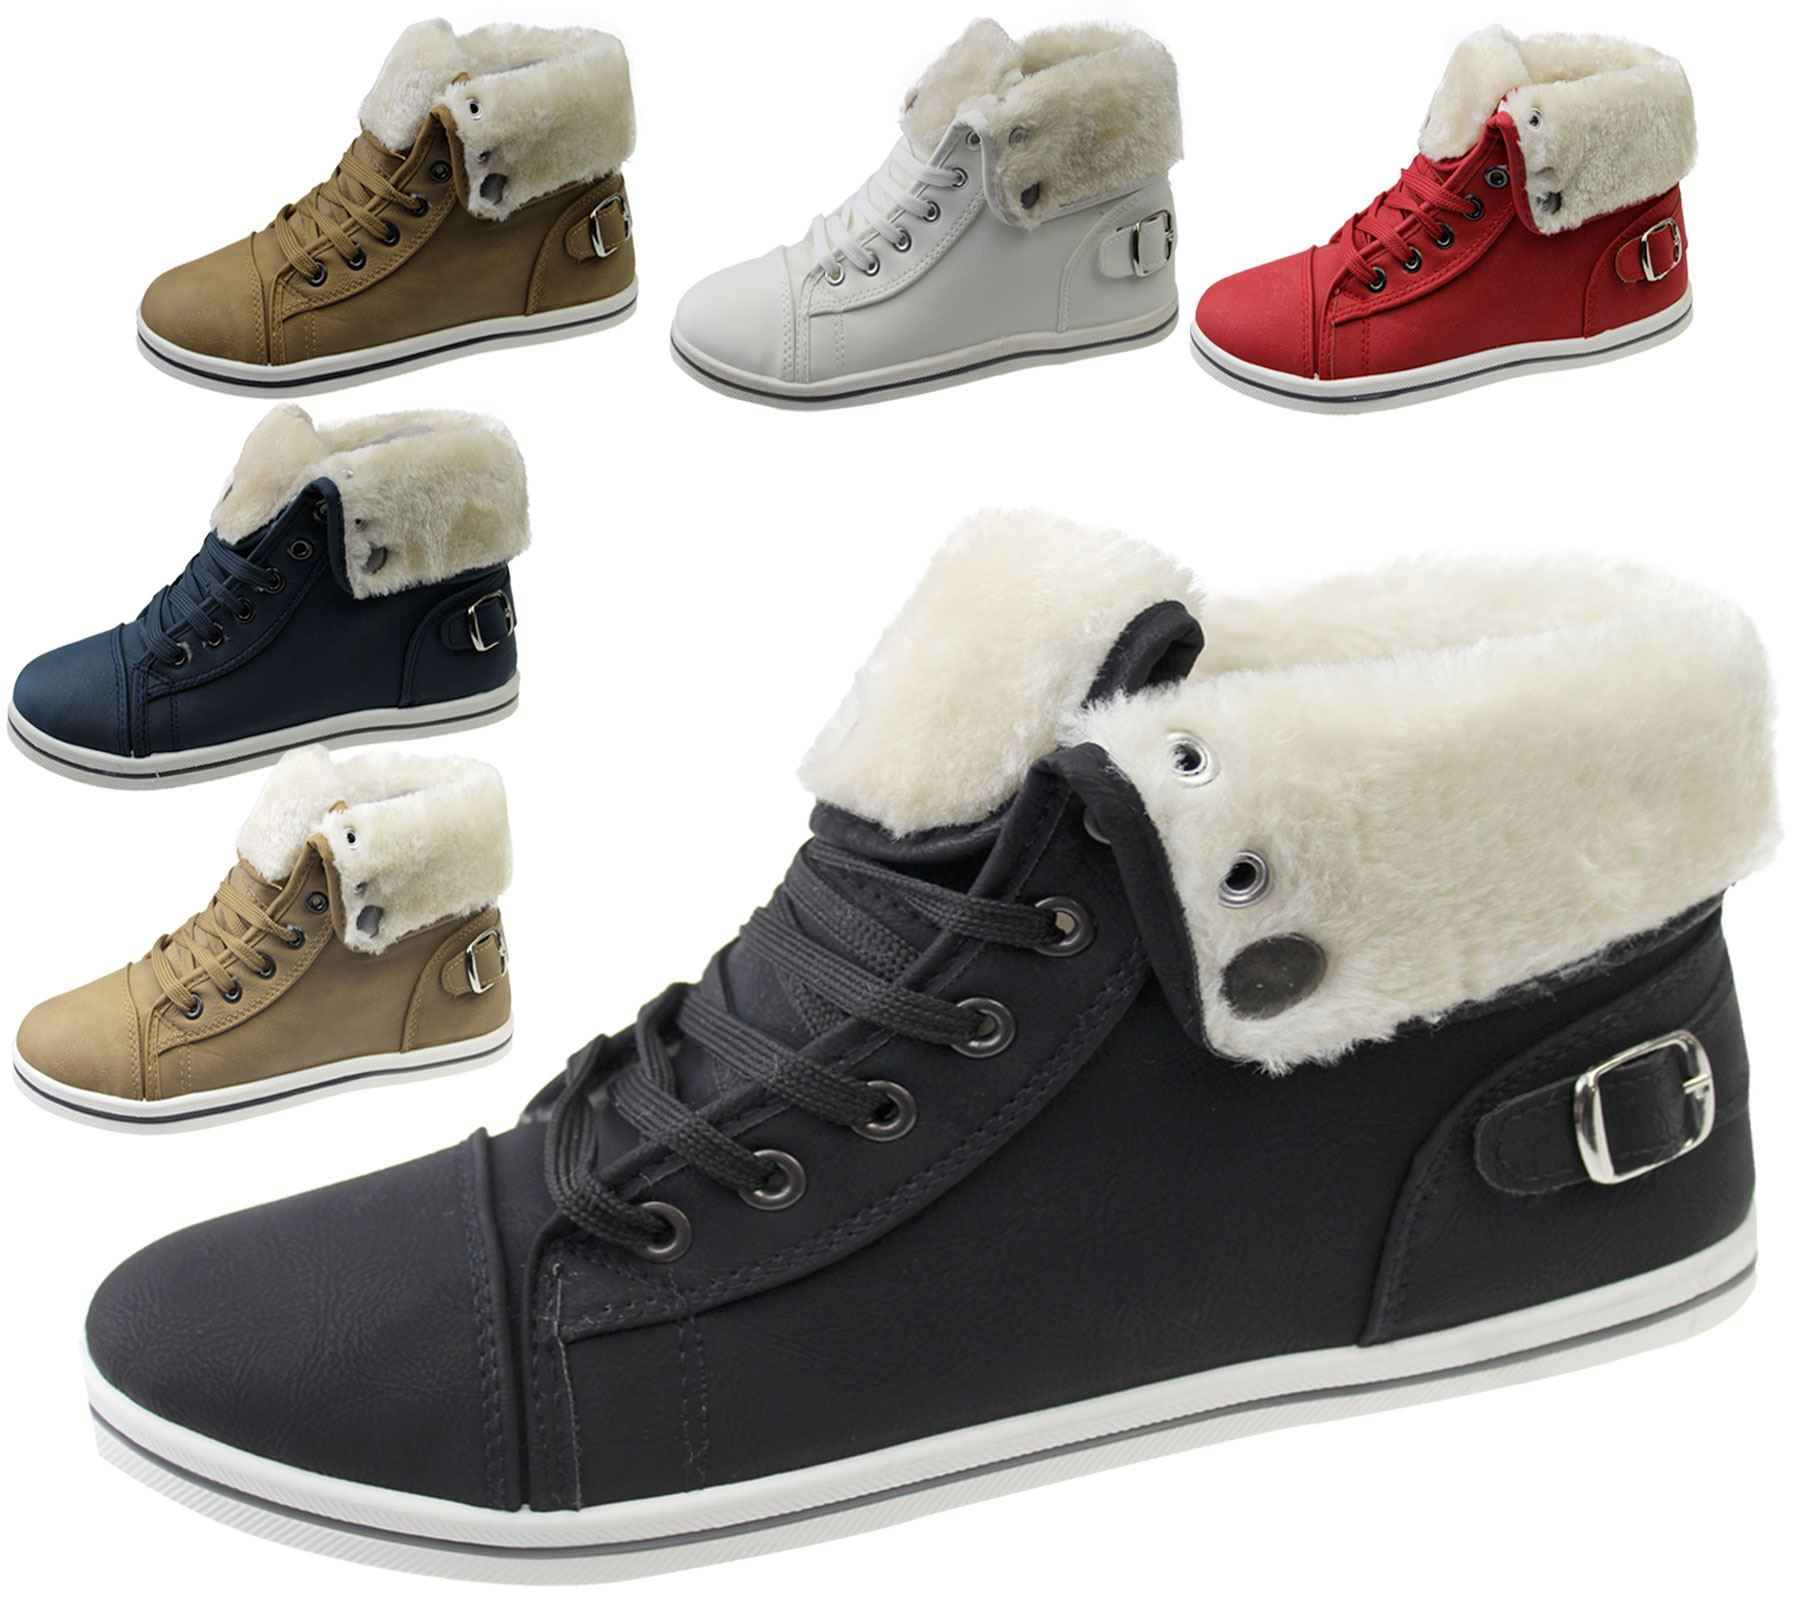 Girls-Boots-Womens-Warm-Lined-High-Top-Ankle-Trainer-Ladies-Winter-Shoes-Size miniatura 3